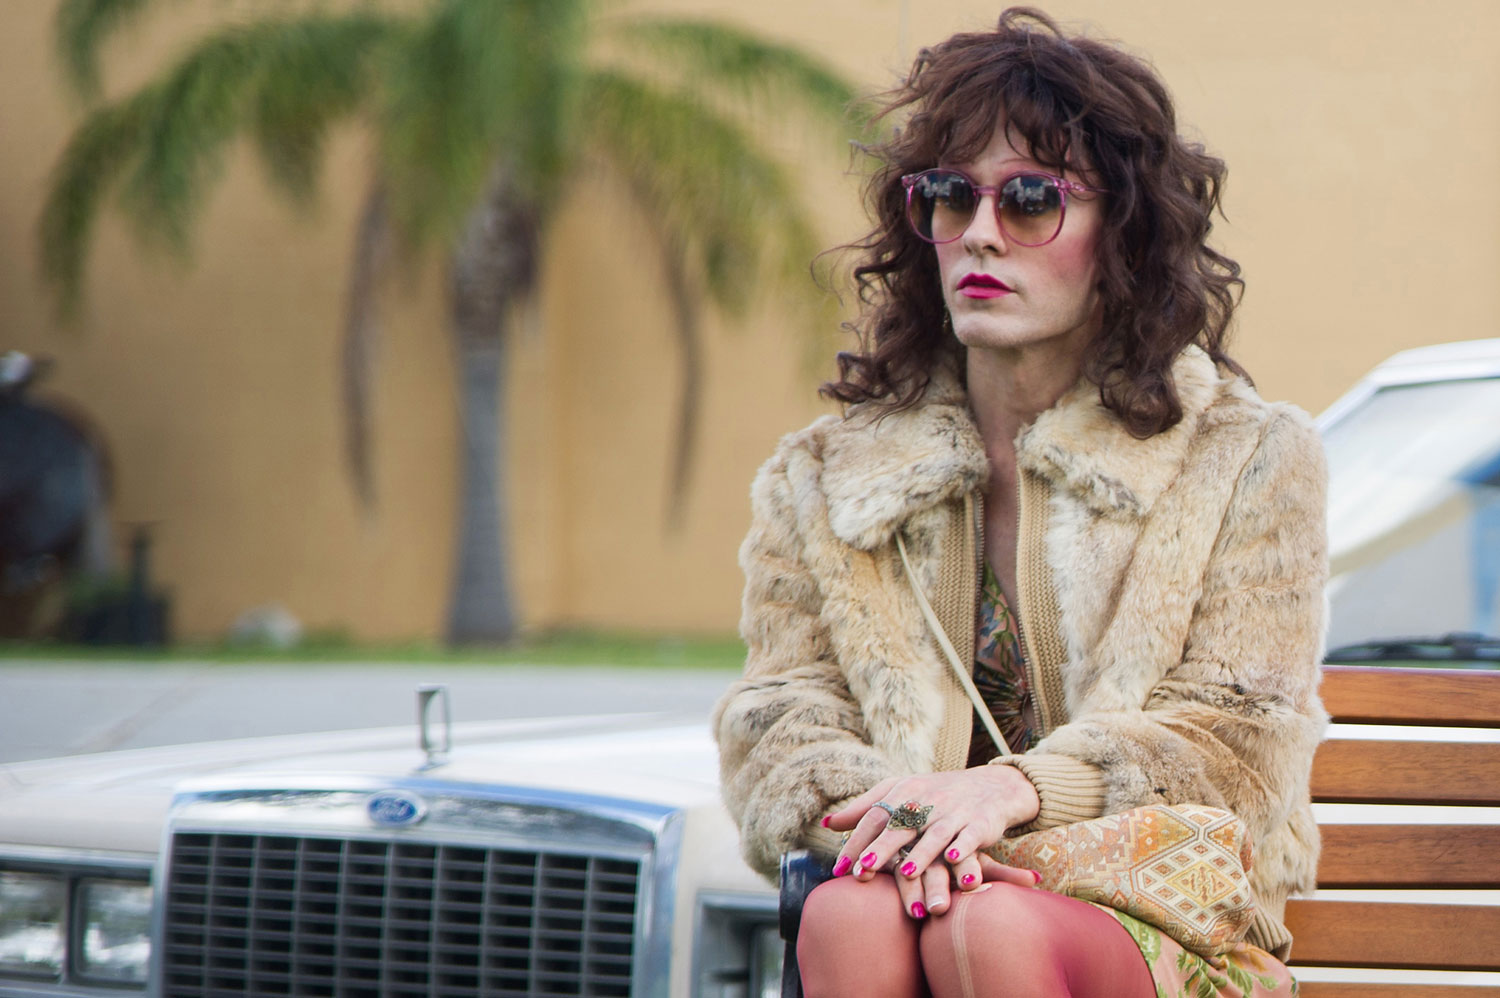 jared-leto-dallas-buyers-club-transgender.jpg